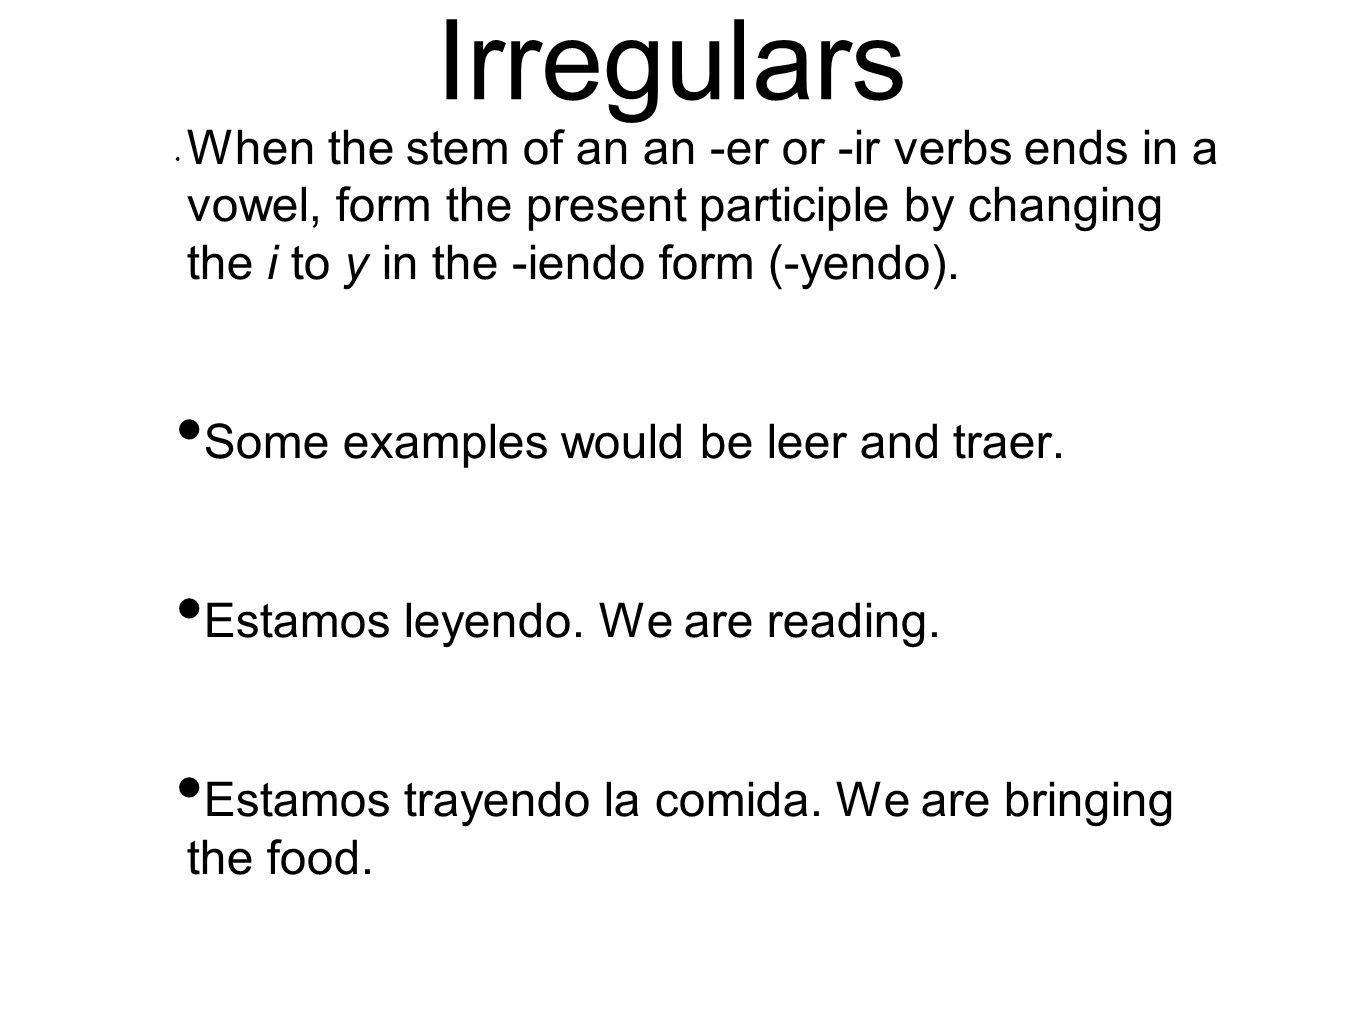 Irregulars When the stem of an an -er or -ir verbs ends in a vowel, form the present participle by changing the i to y in the -iendo form (-yendo).